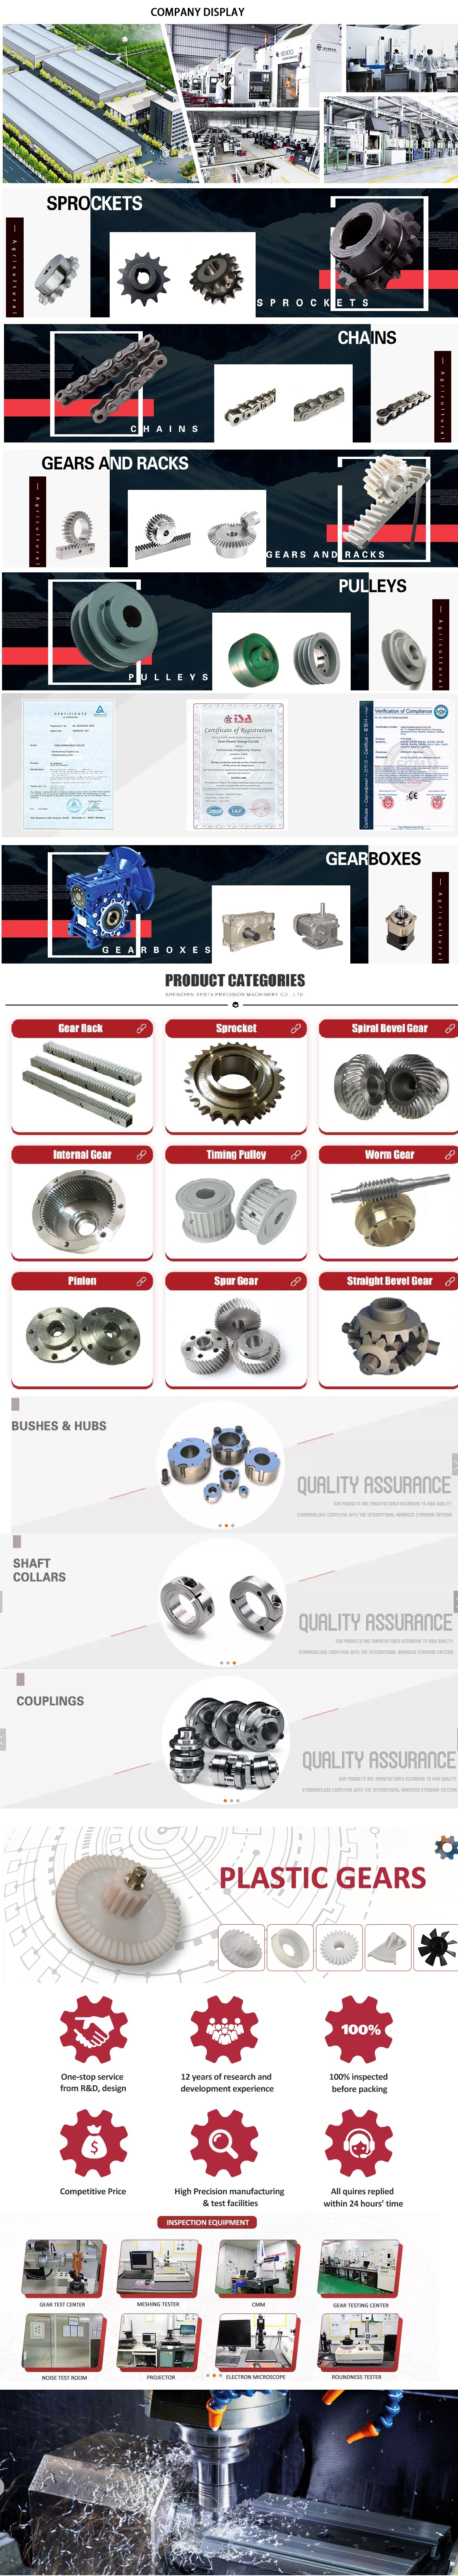 Best  made in China - replacement parts - manufacturer in China First  hydraulic pump pto clutch Shaft Assembly of Automobile Gear-Box with ce certificate top quality low price suitable for Tractor, Agricultural machines, right angle pto shaft drive